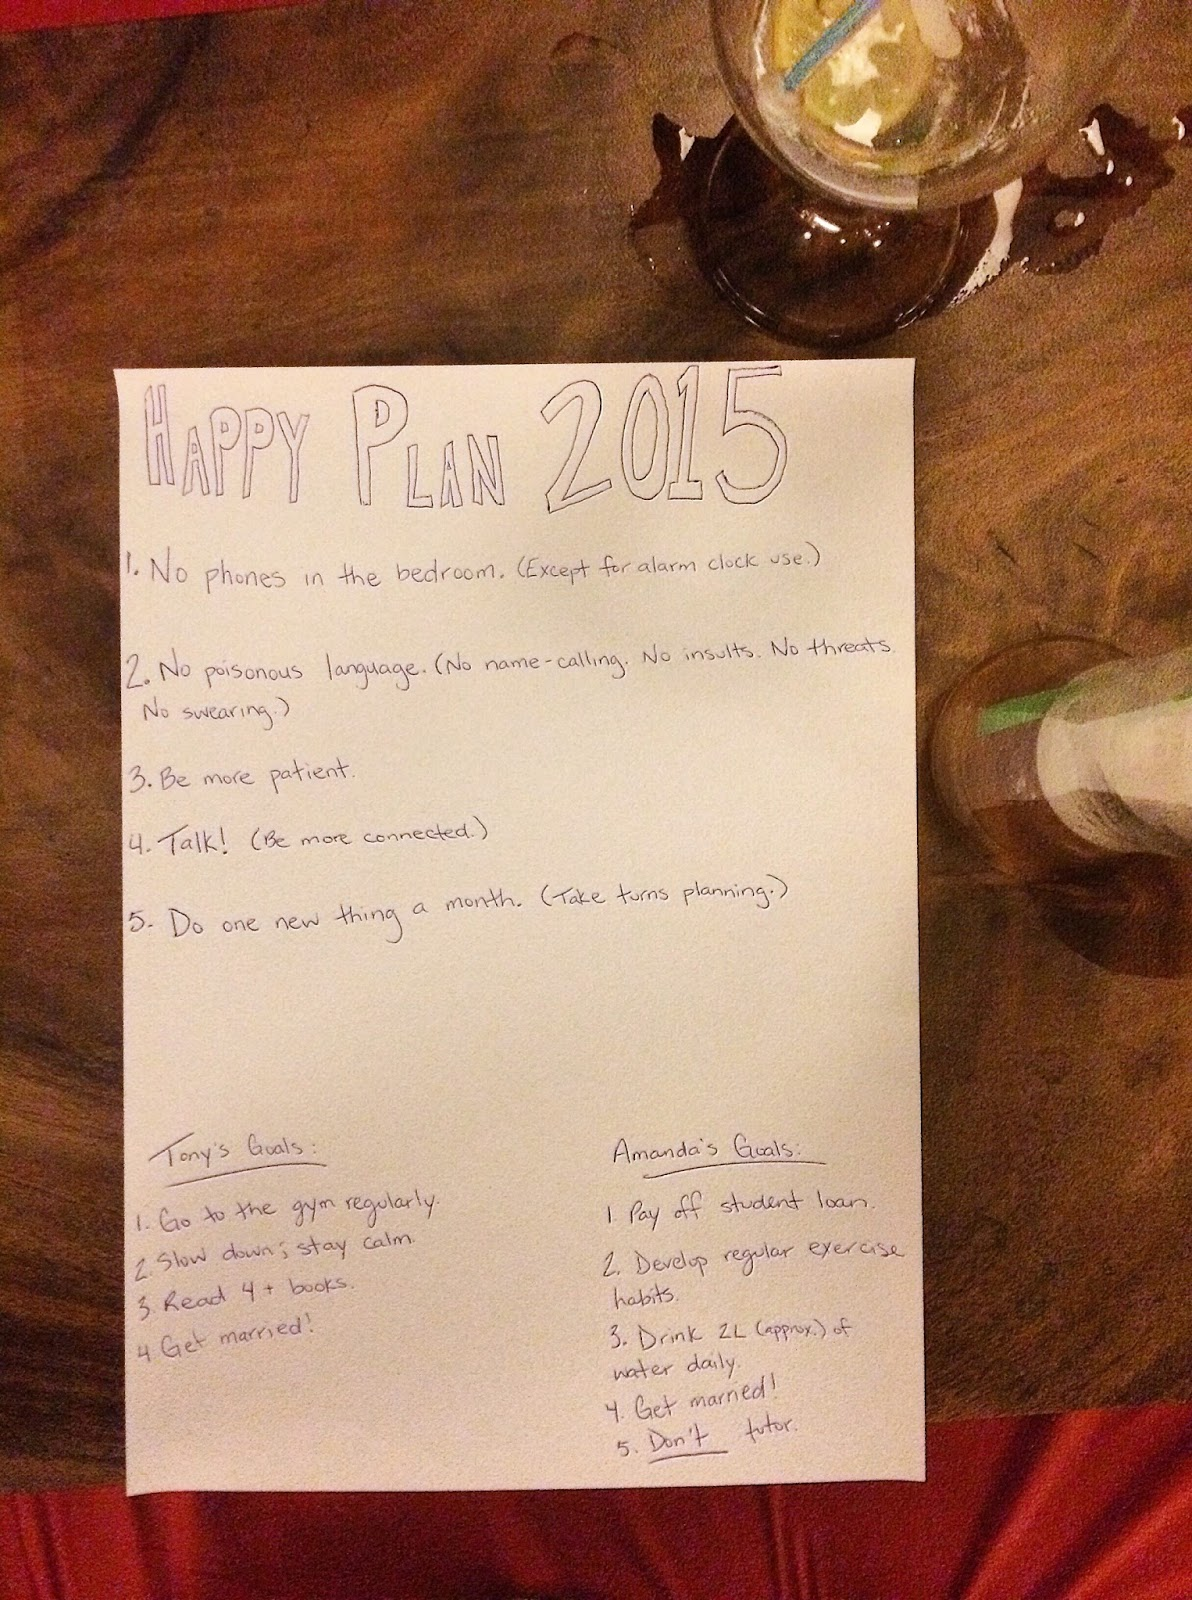 happy plan 2015.